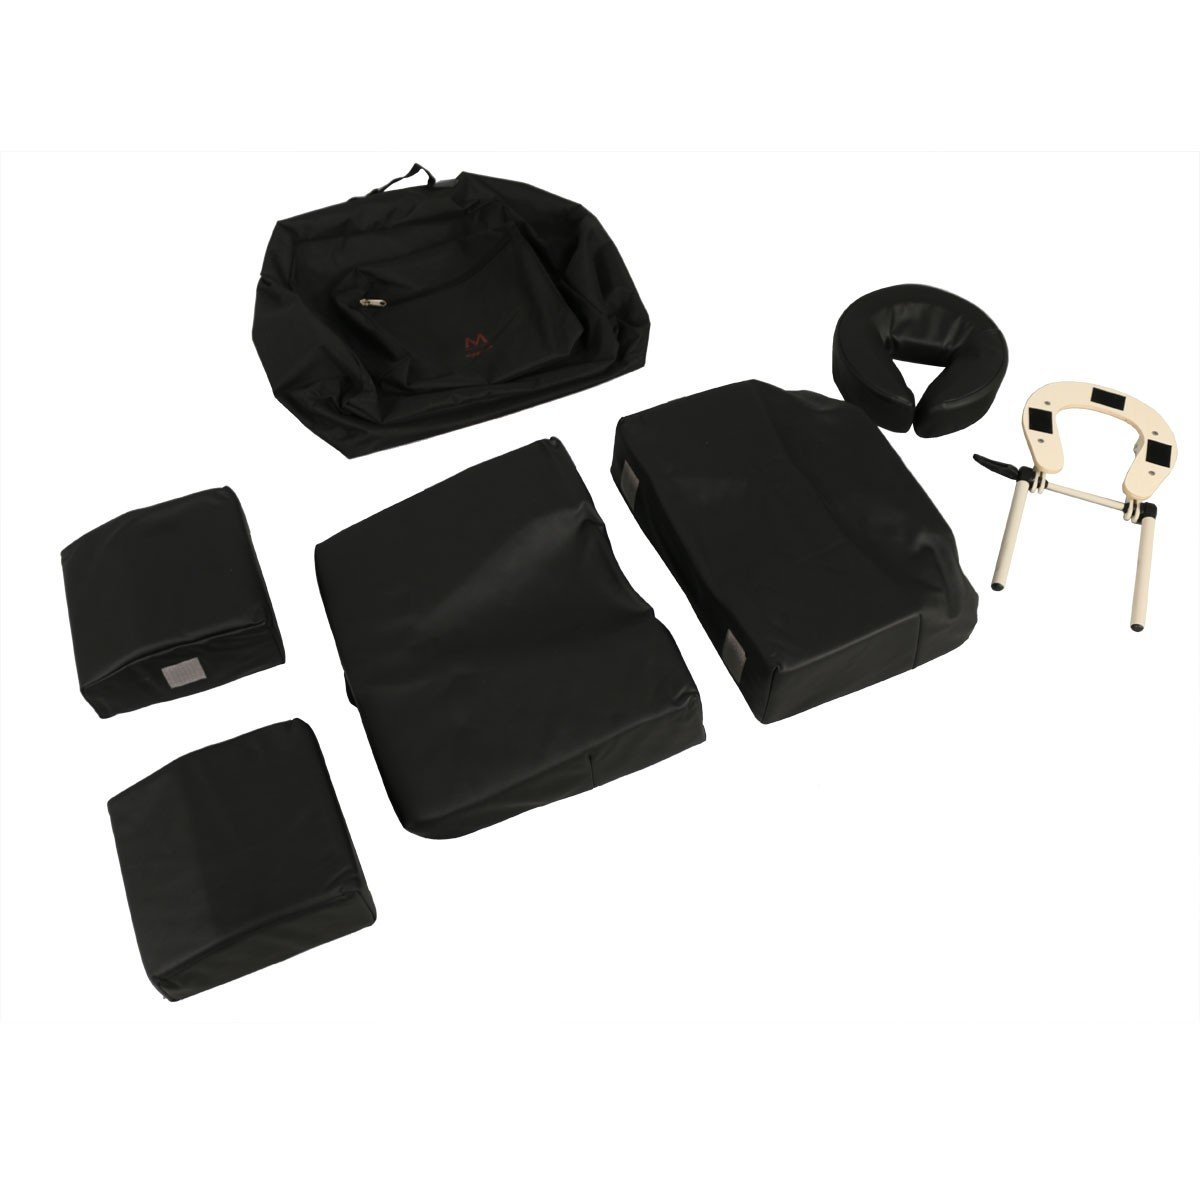 Minerva Deluxe Massage Pregnancy Bolster Set in Black with Carrying Case by Minerva